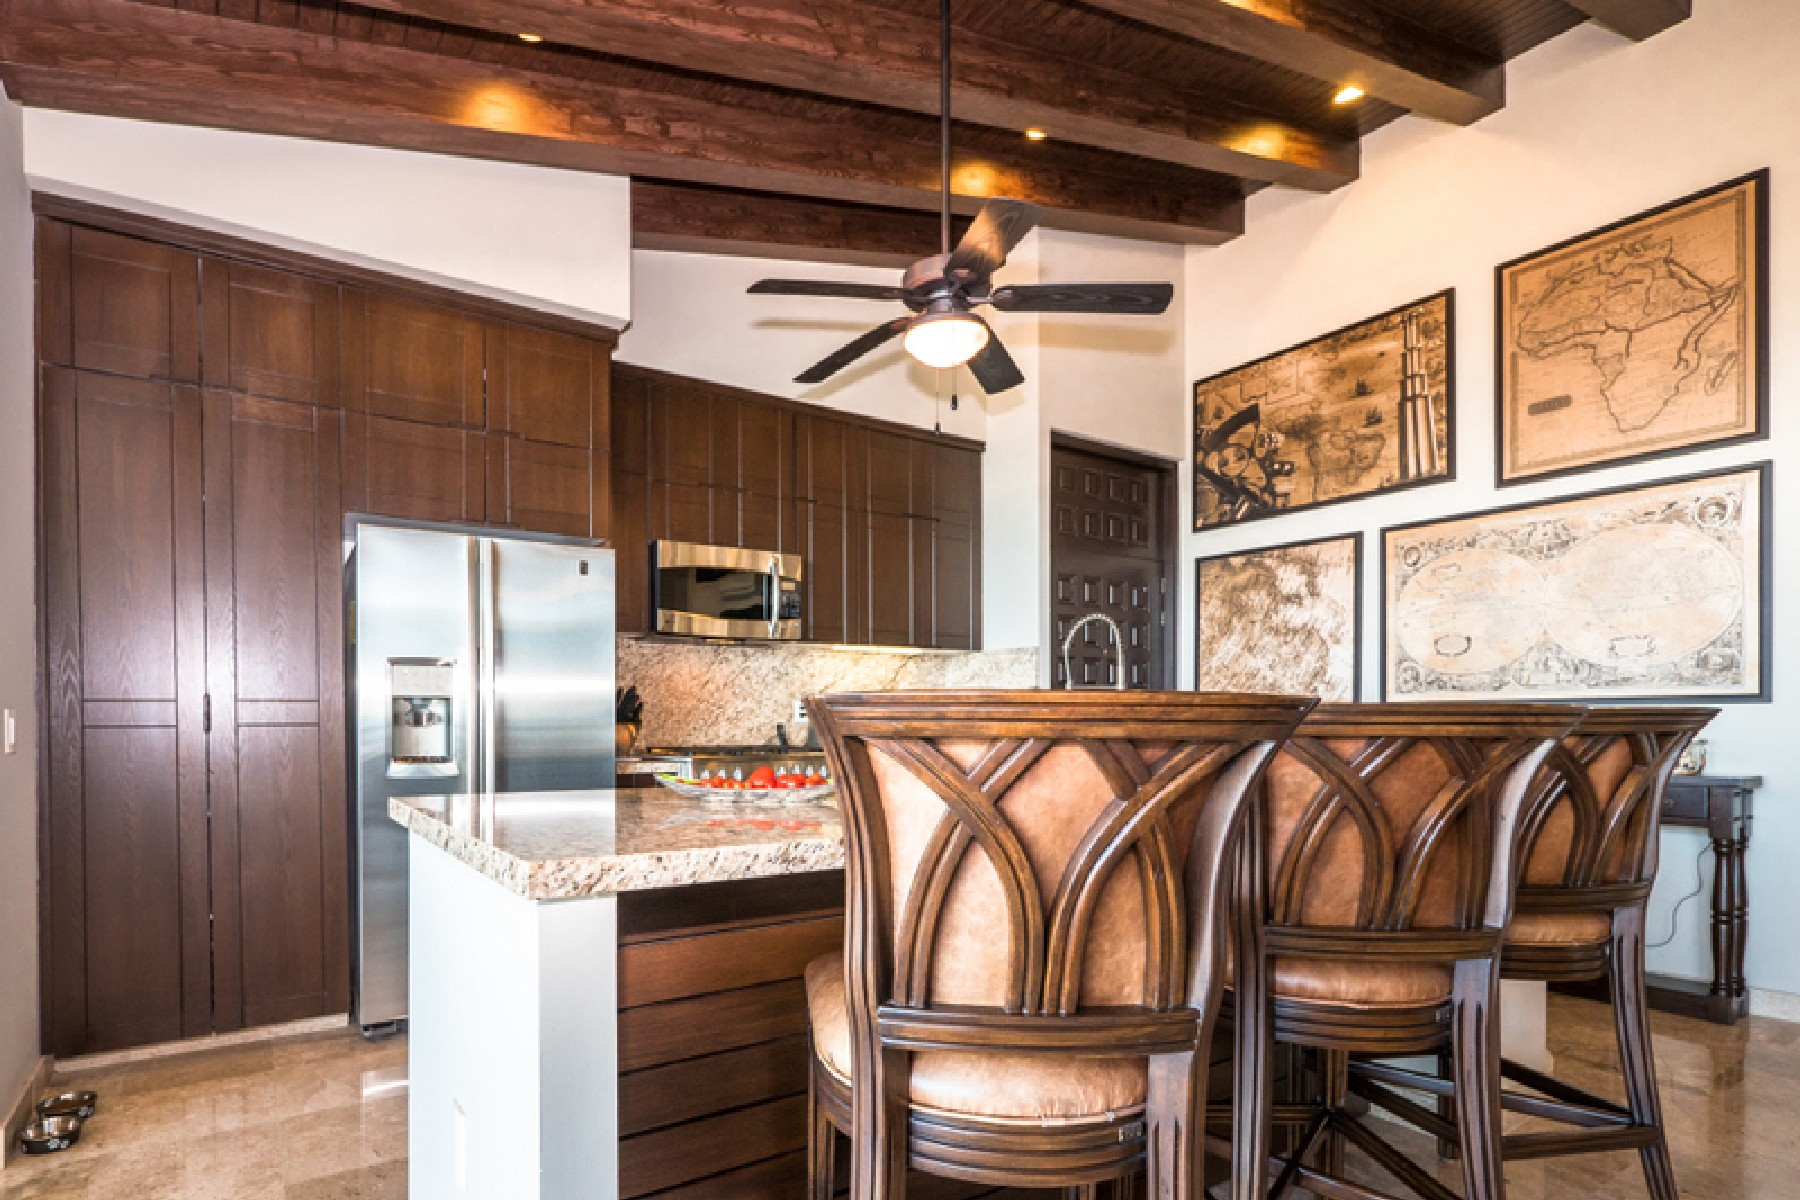 Additional photo for property listing at Signature by Pinnacle PH2 Calle Pulpito 180 Puerto Vallarta, Jalisco 48380 México